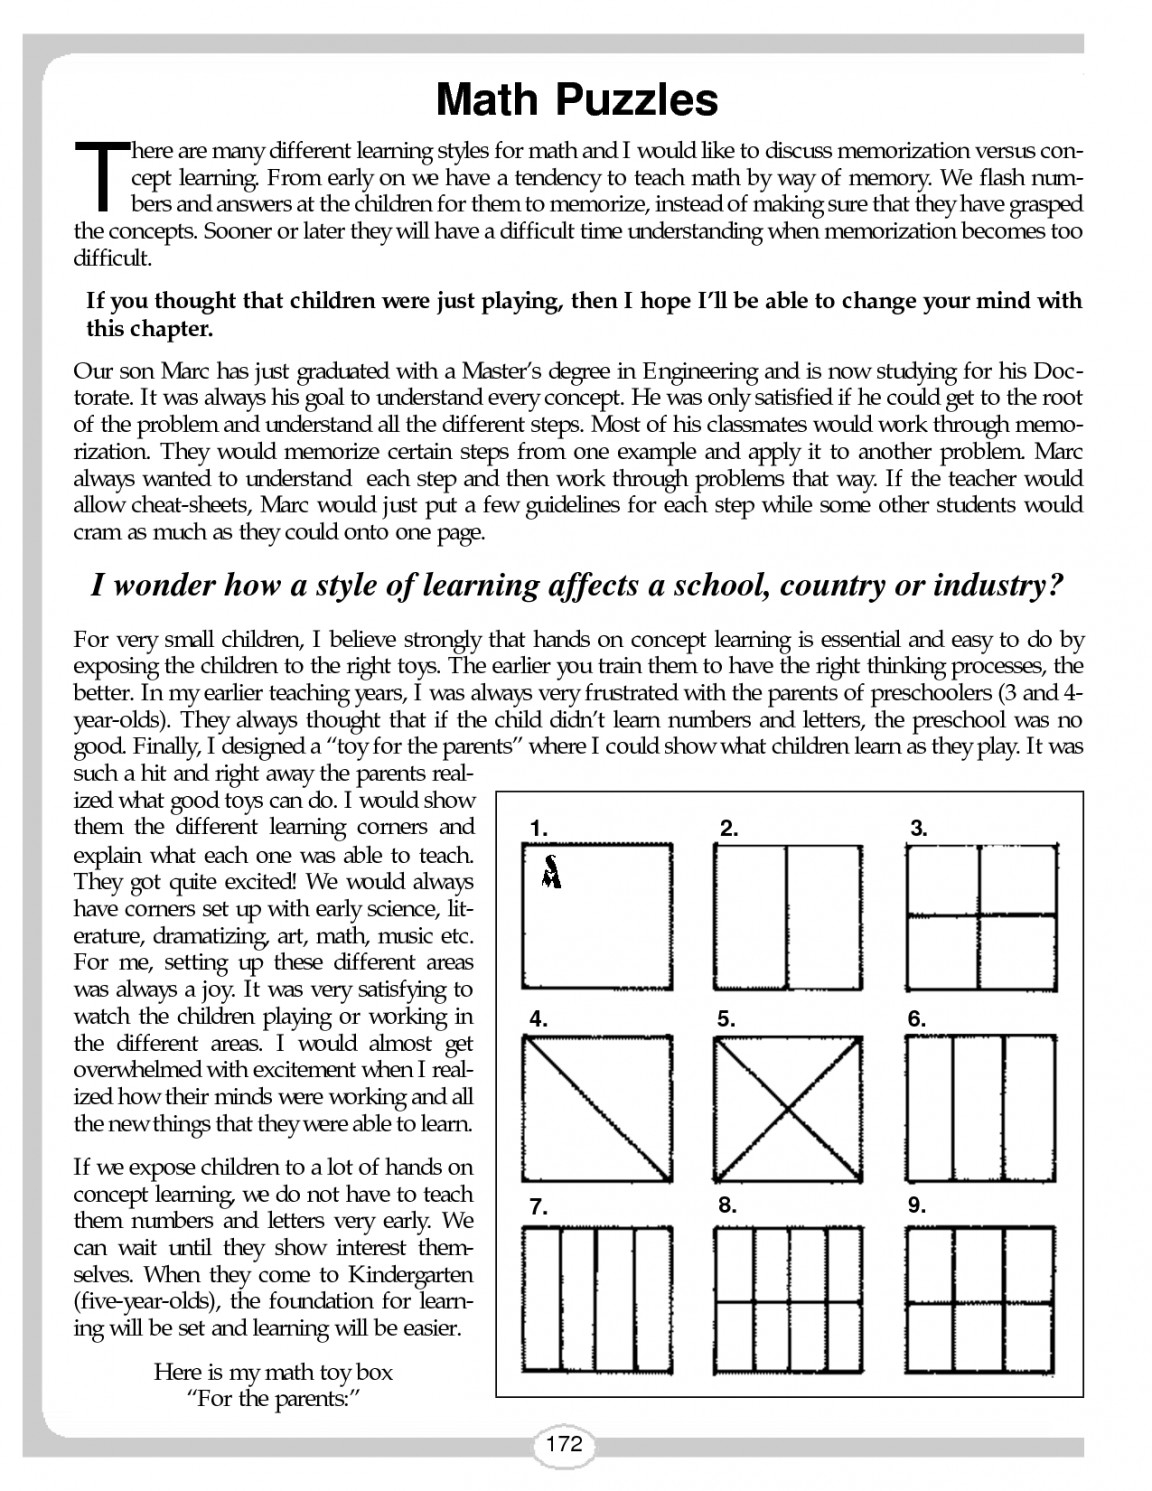 Printable Logic Puzzles For Middle School New Crossword Thanksgiving - Printable Puzzles For Middle School